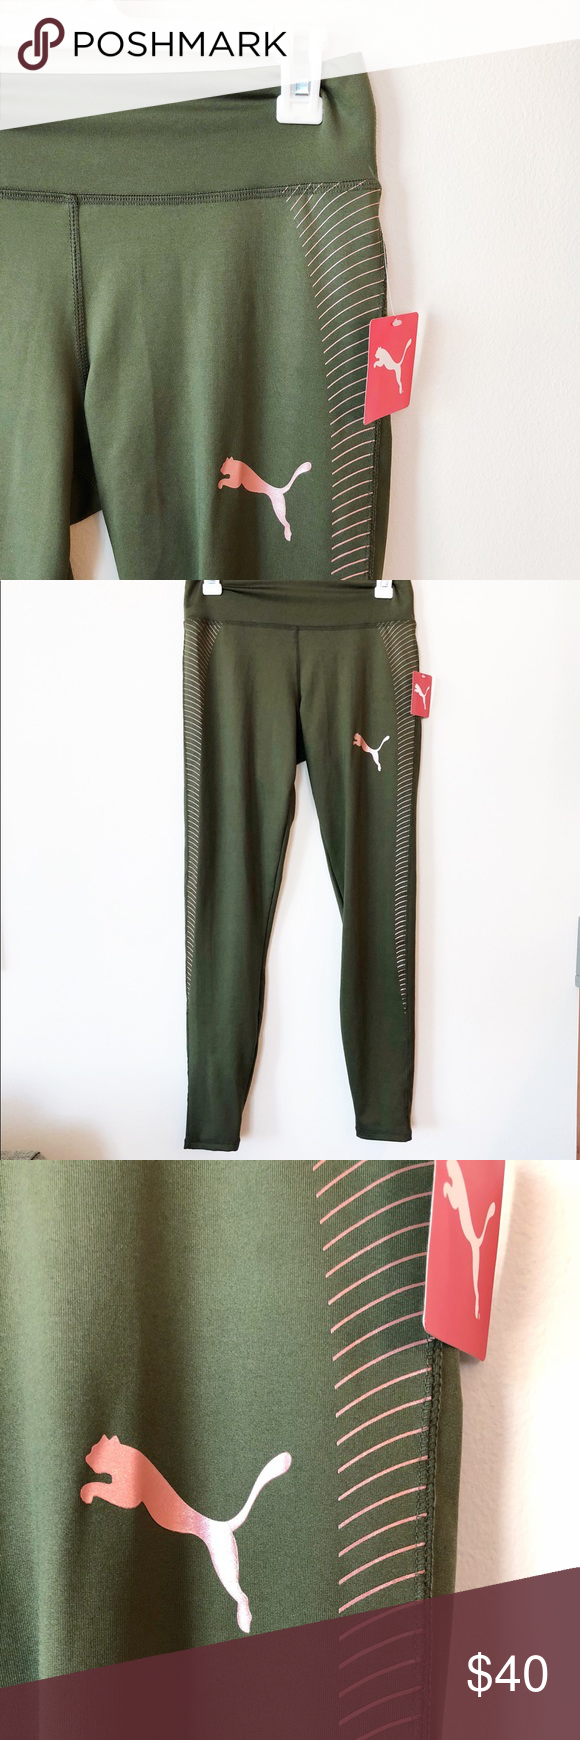 372c157d83b58a NEW Puma leggings athletic exercise pants green LOVE this color  combination! These olive green